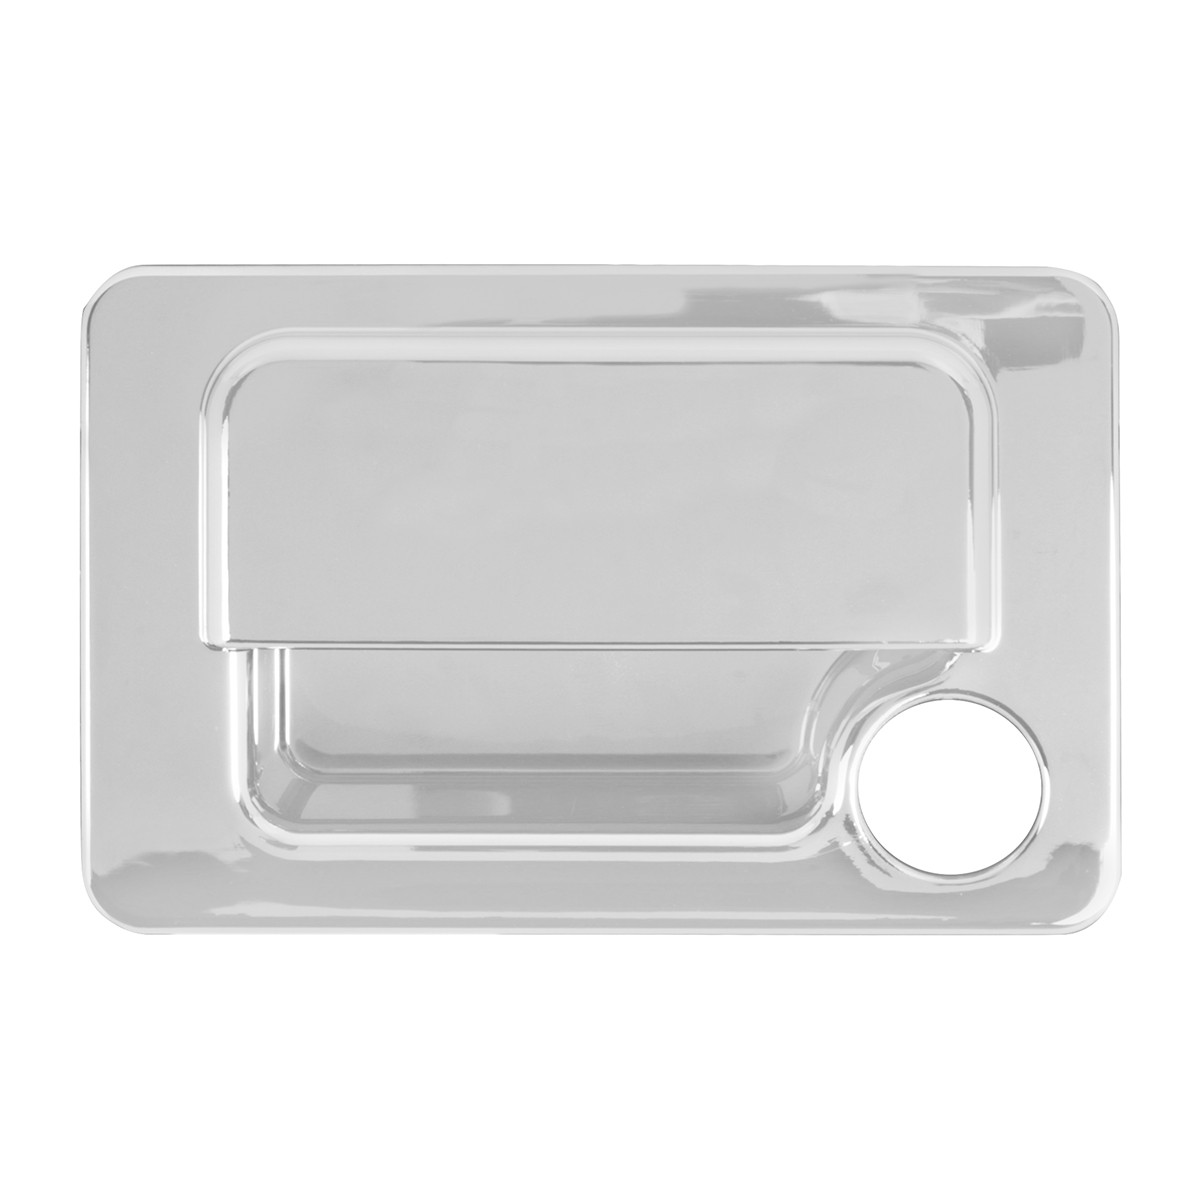 67954 Glove Box Latch Cover for Peterbilt 20006 & Later